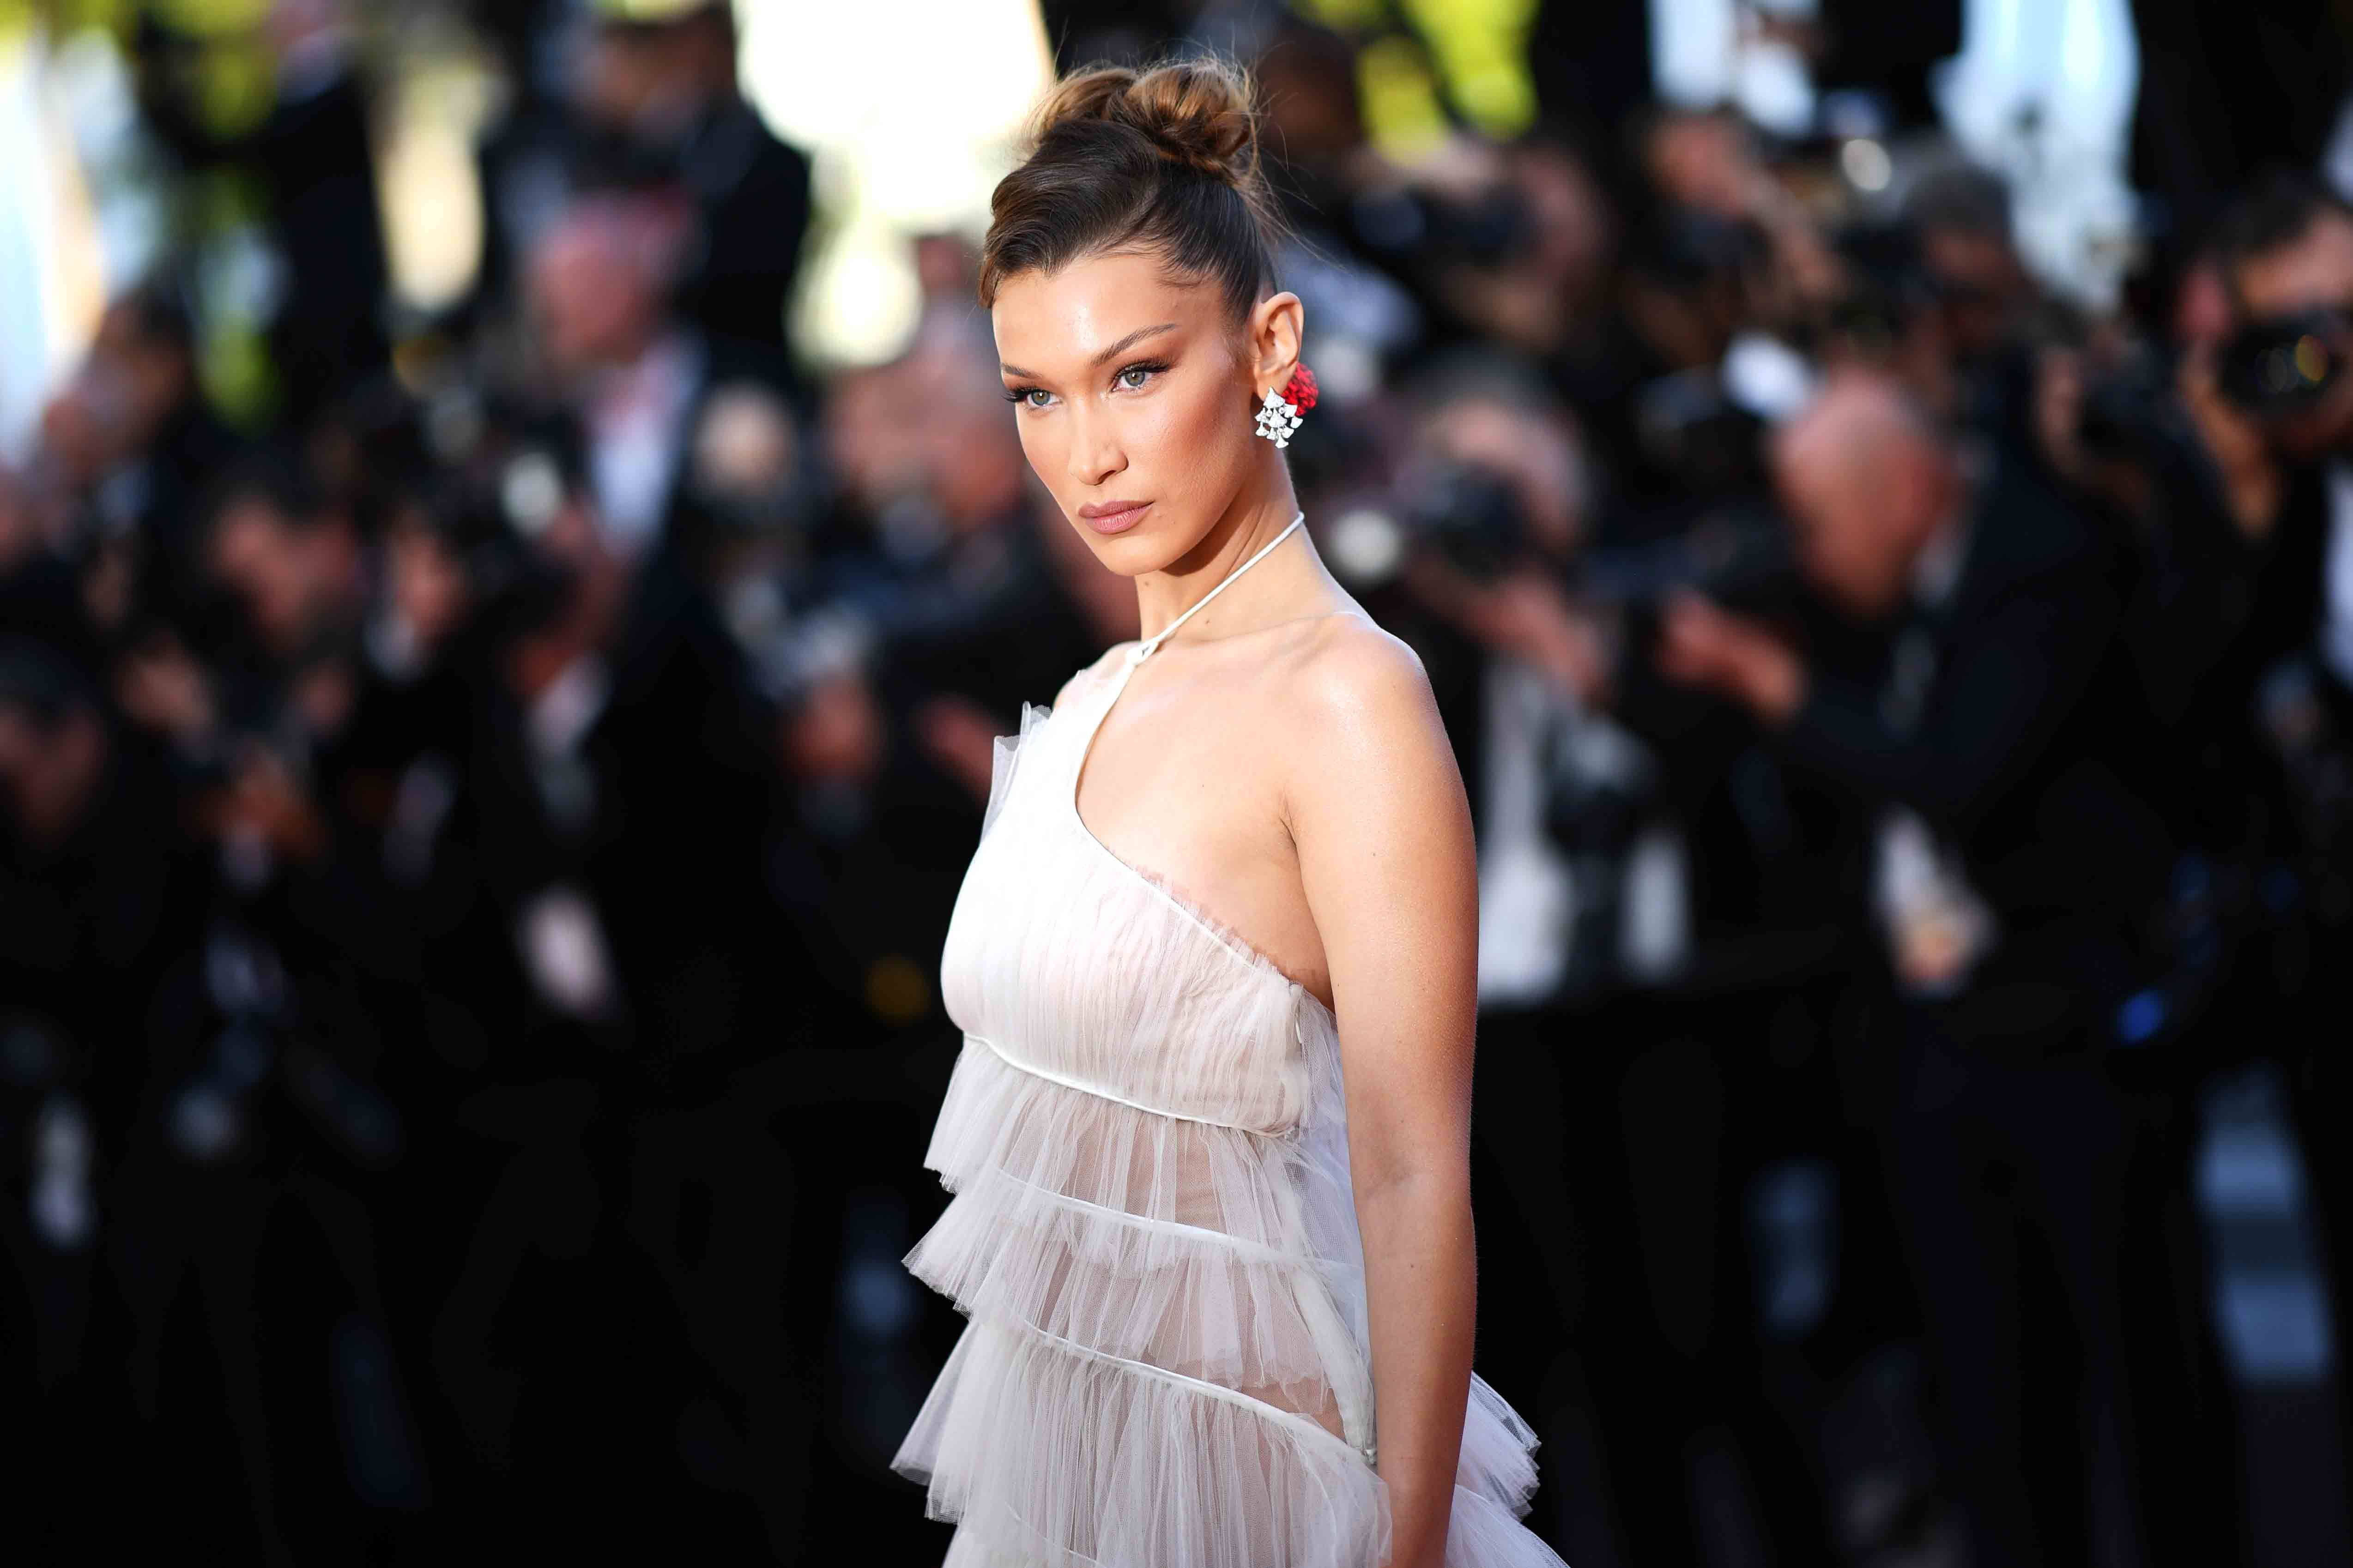 Bella Hadid Stuns In Frothy White Tulle Dior On The Cannes Red Carpet